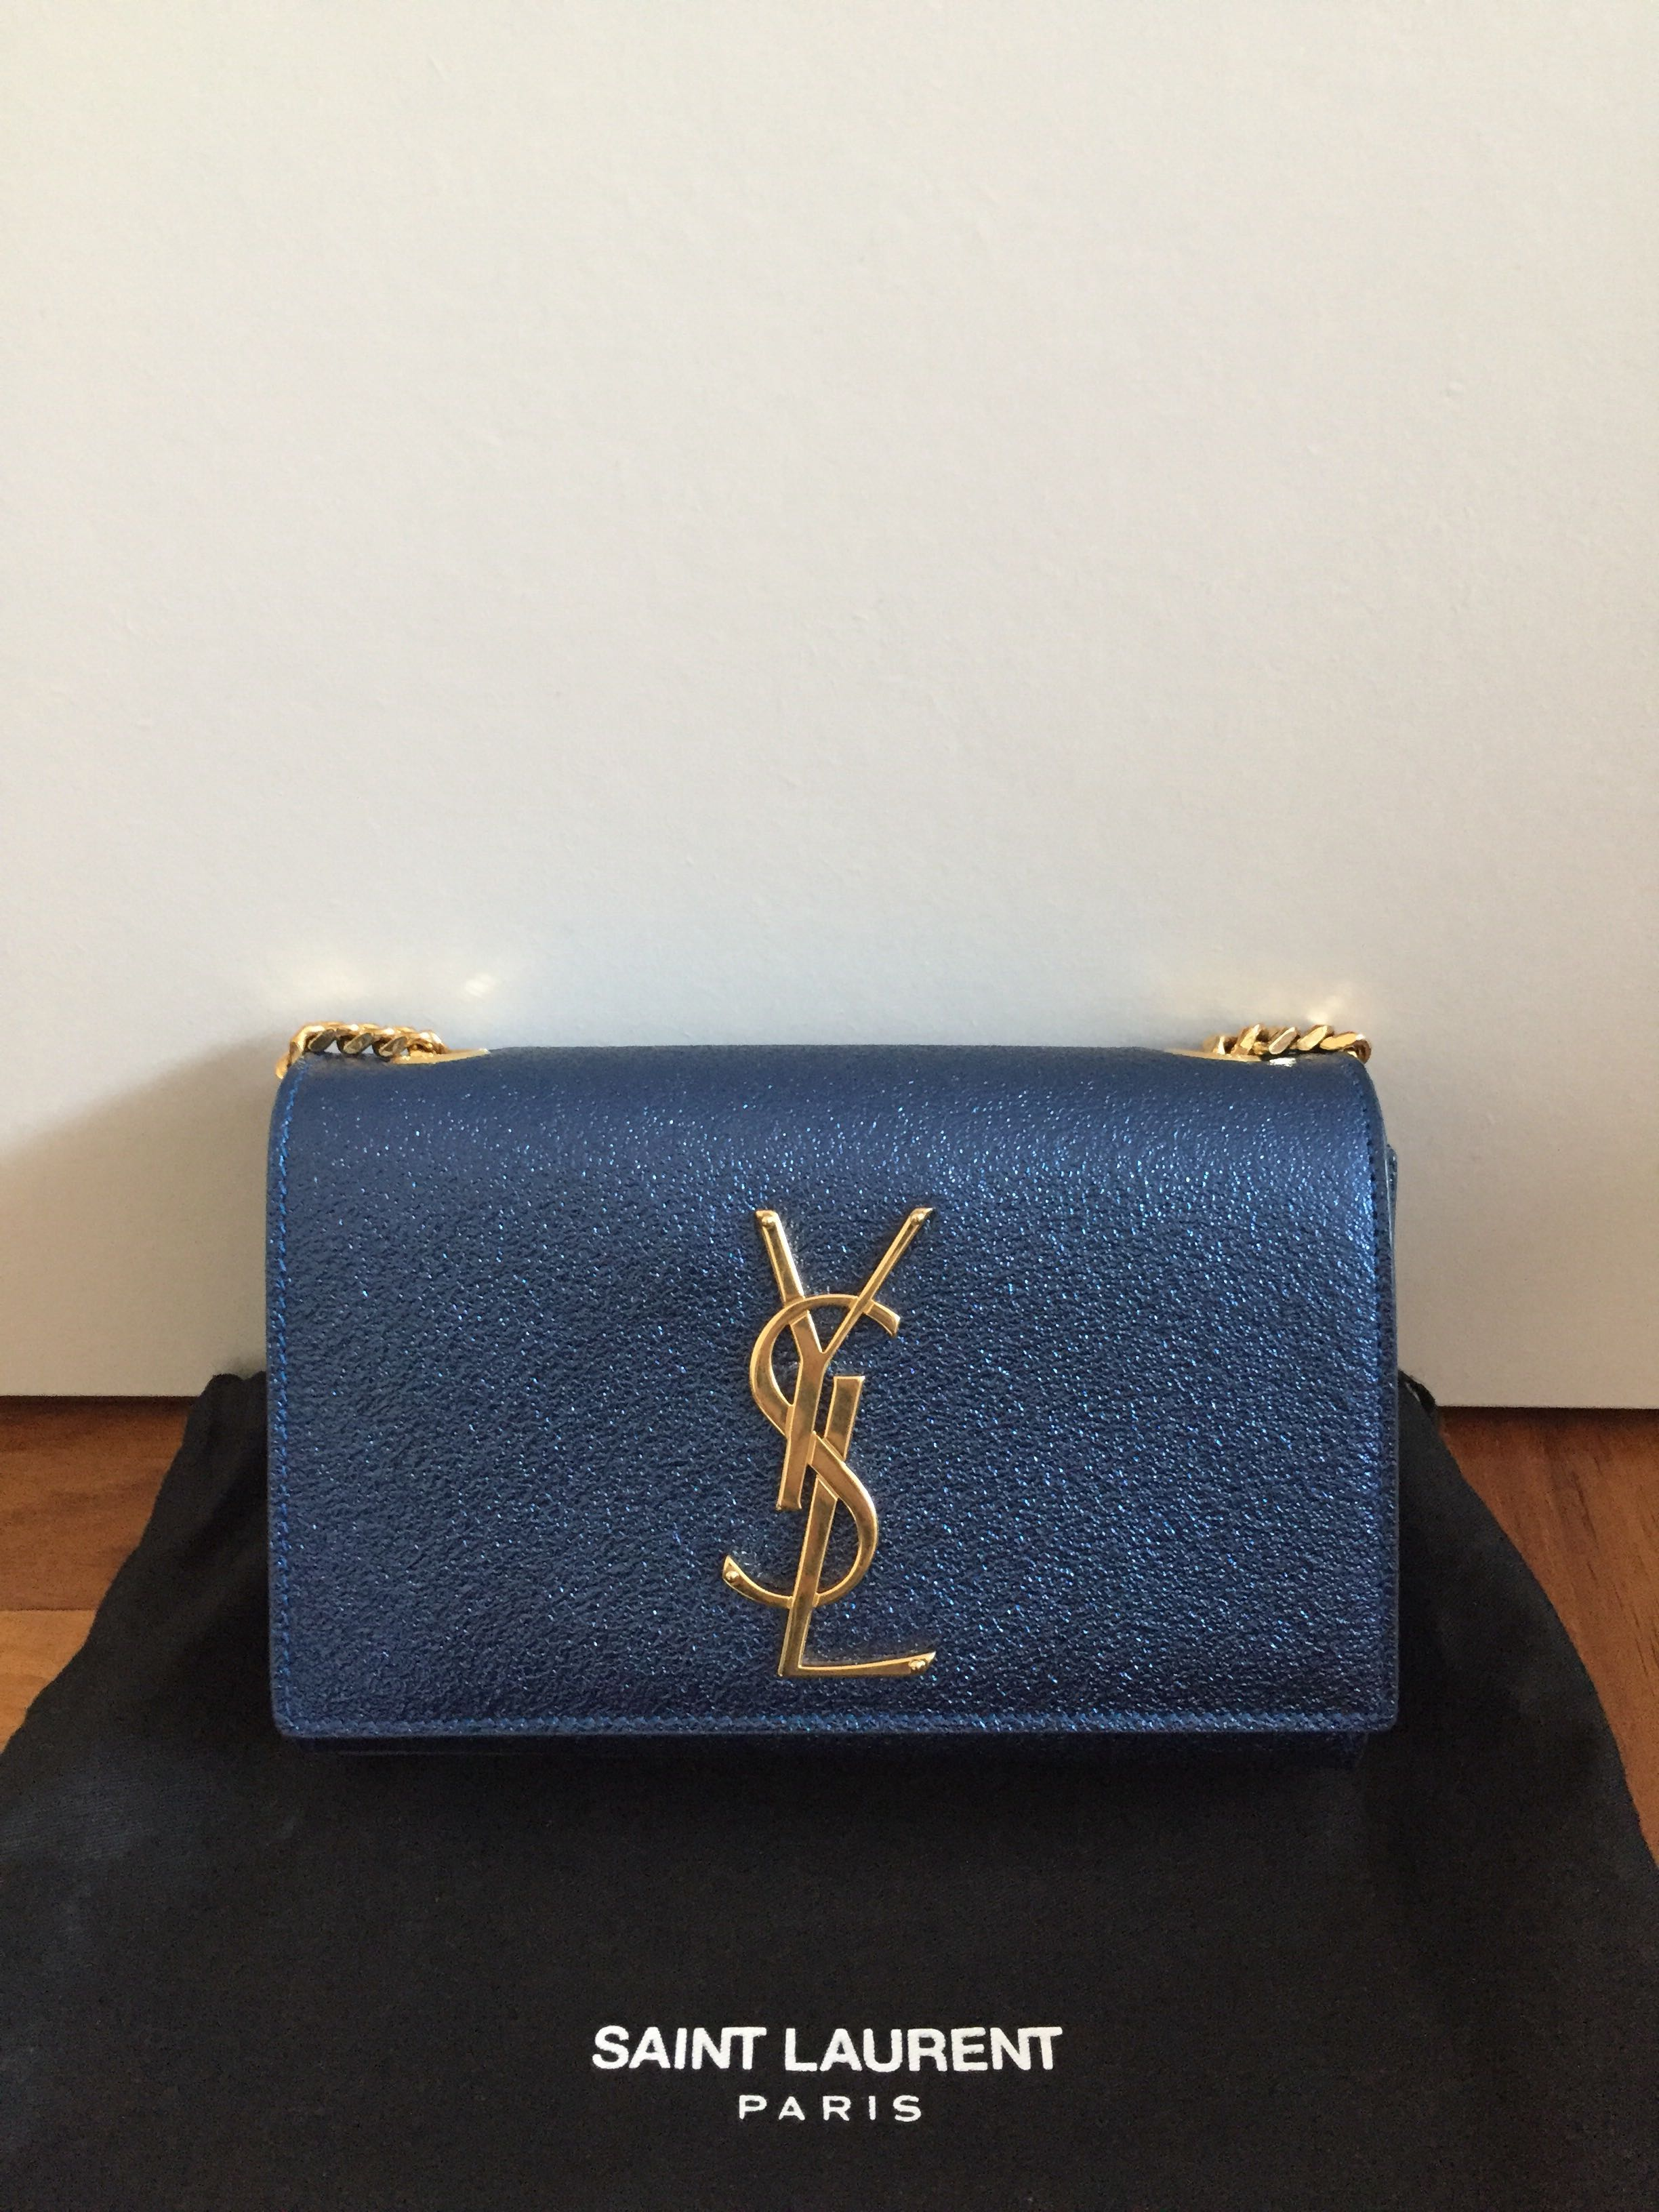 4128c7af6f57 Authentic Saint Laurent YSL kate monogram crossbody chain bag ...